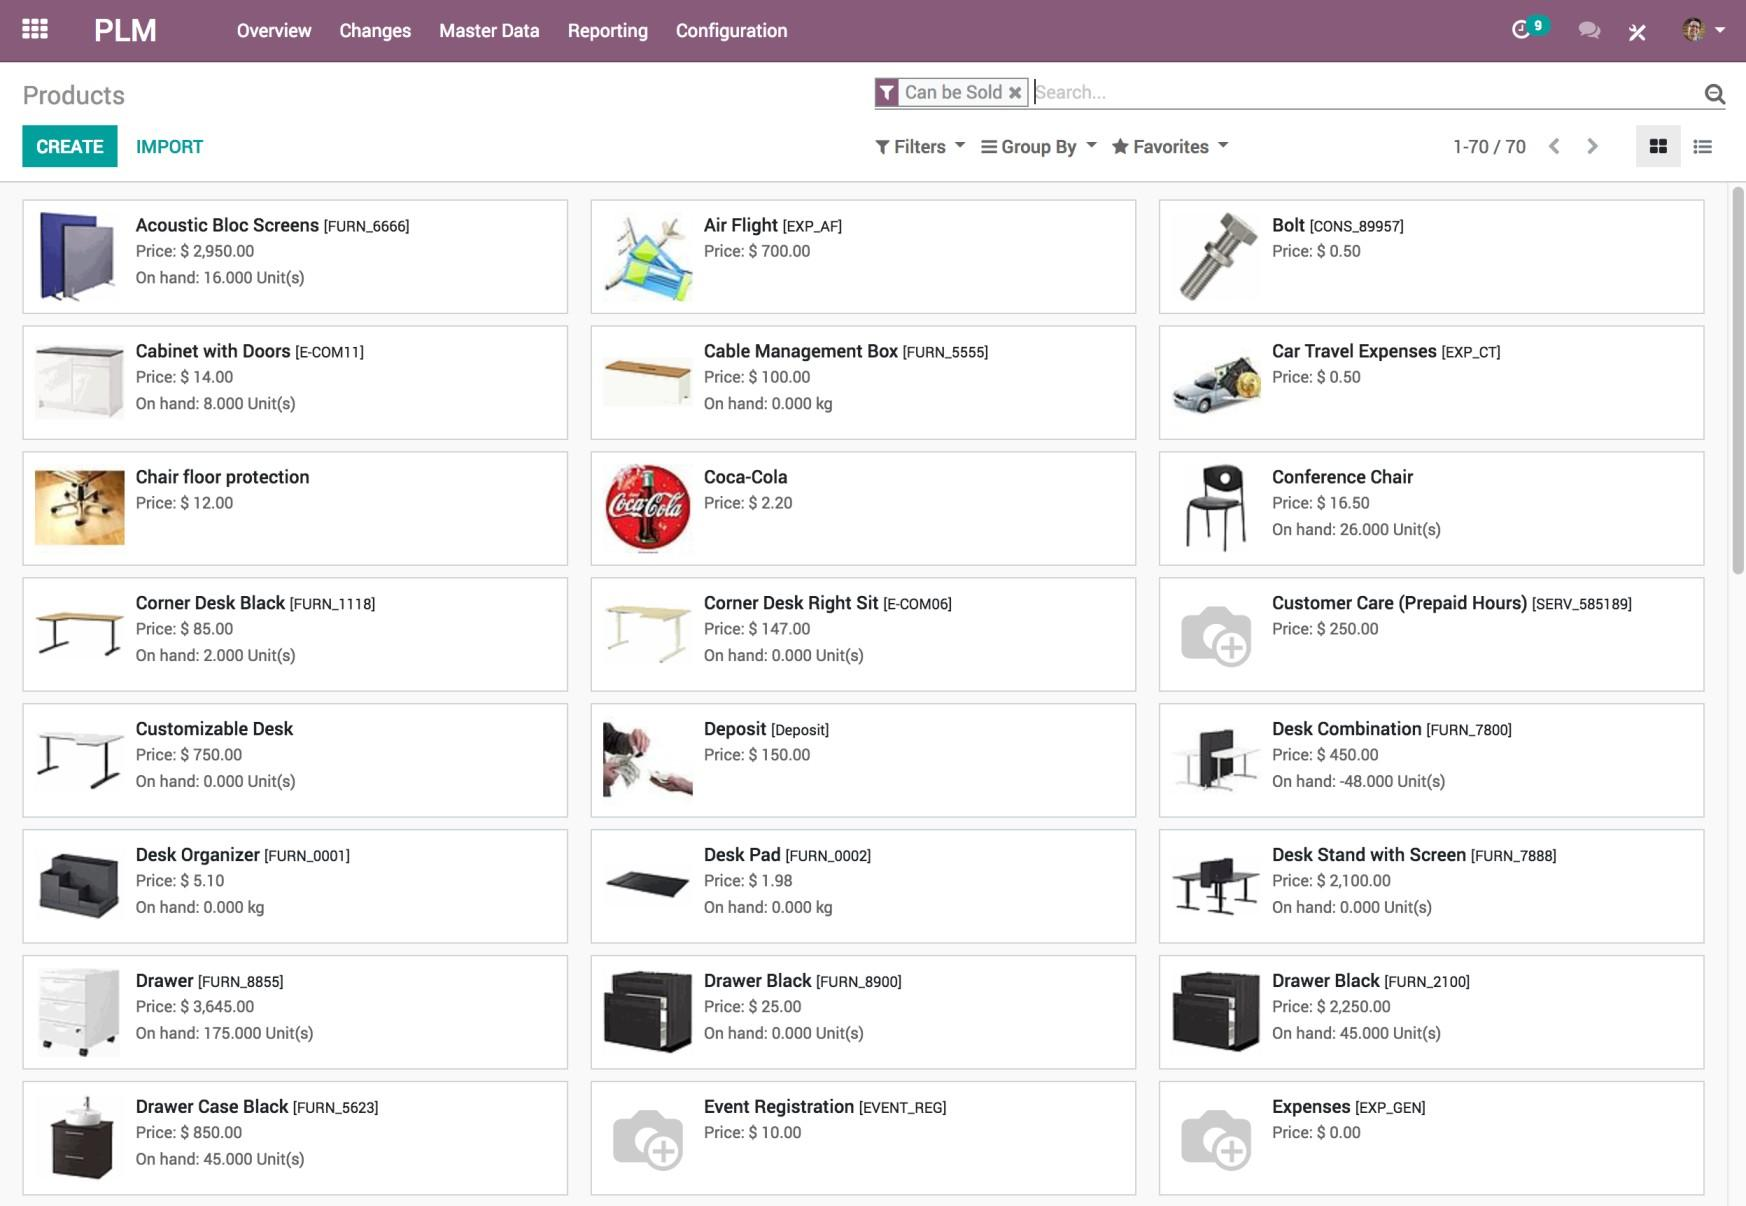 Odoo PLM - Products